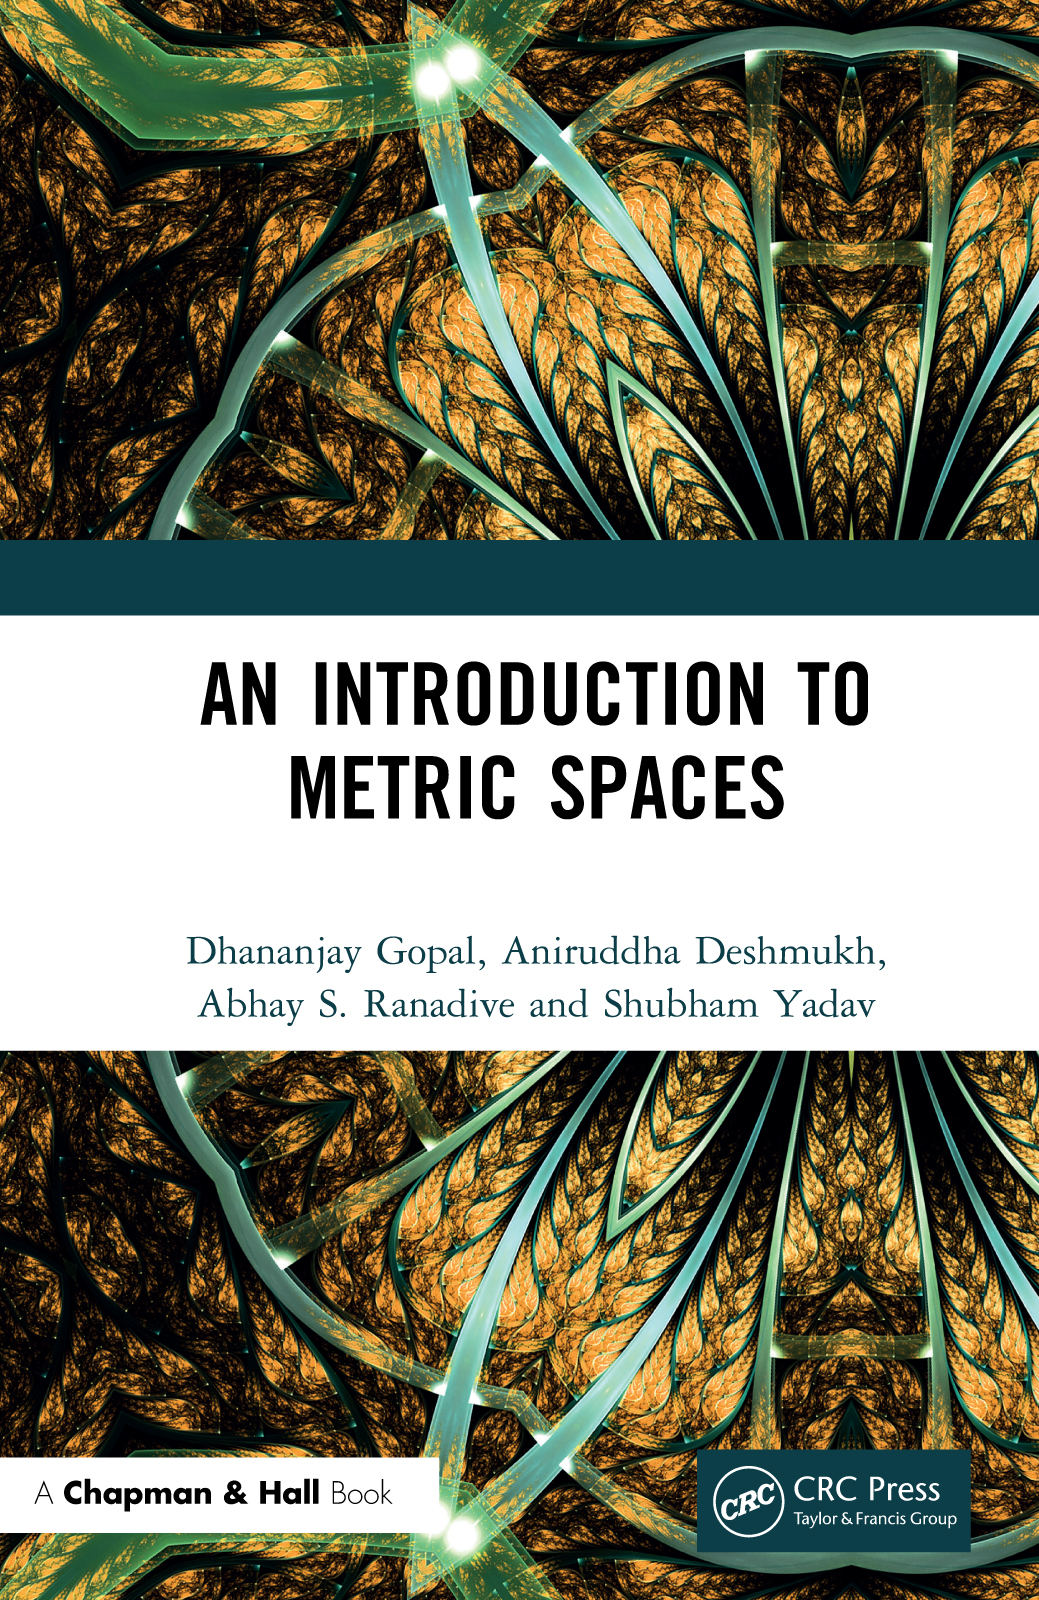 Complete Metric Spaces